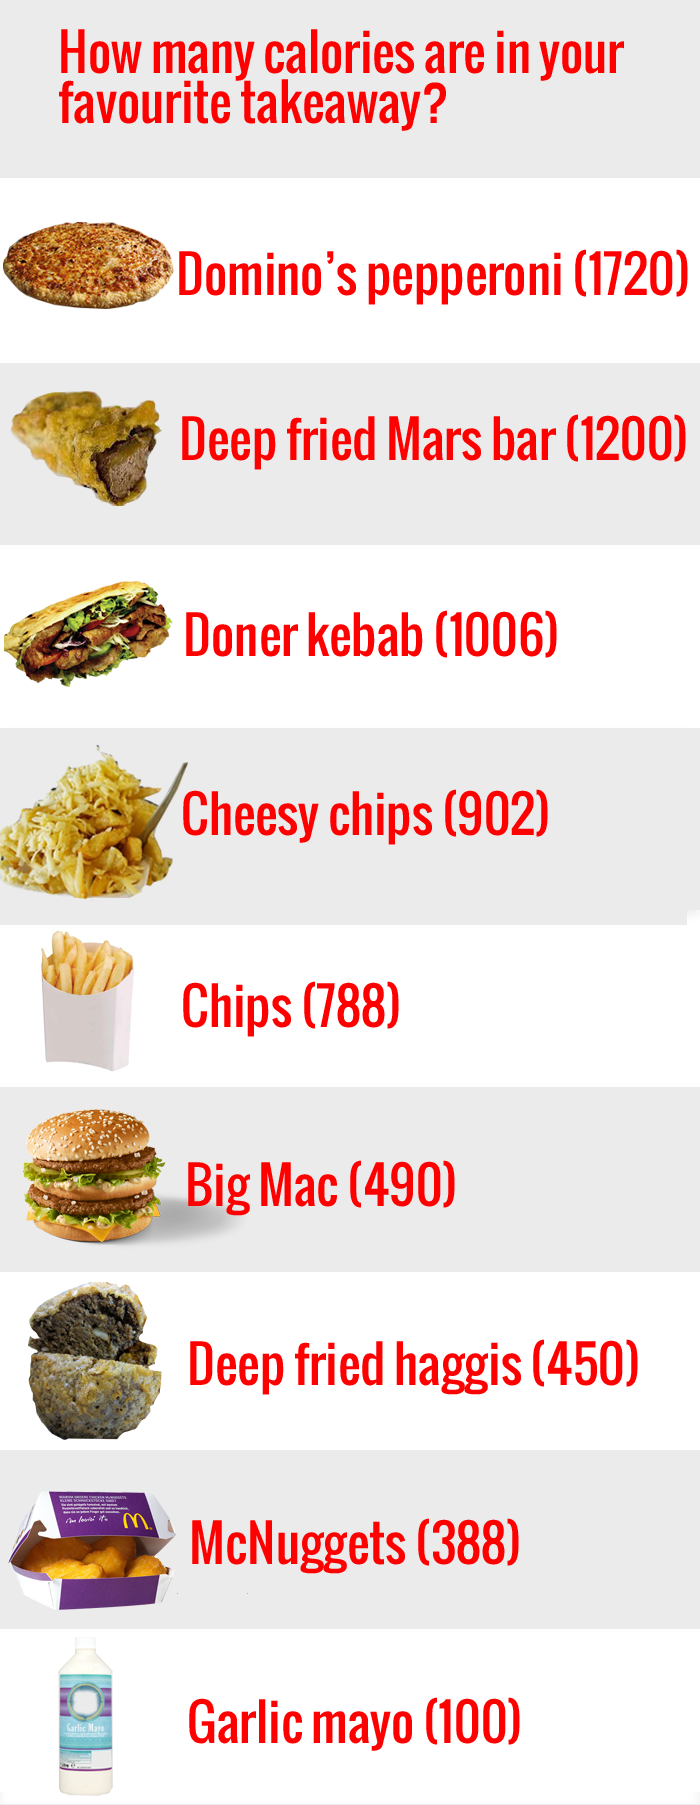 Calories in takeaway